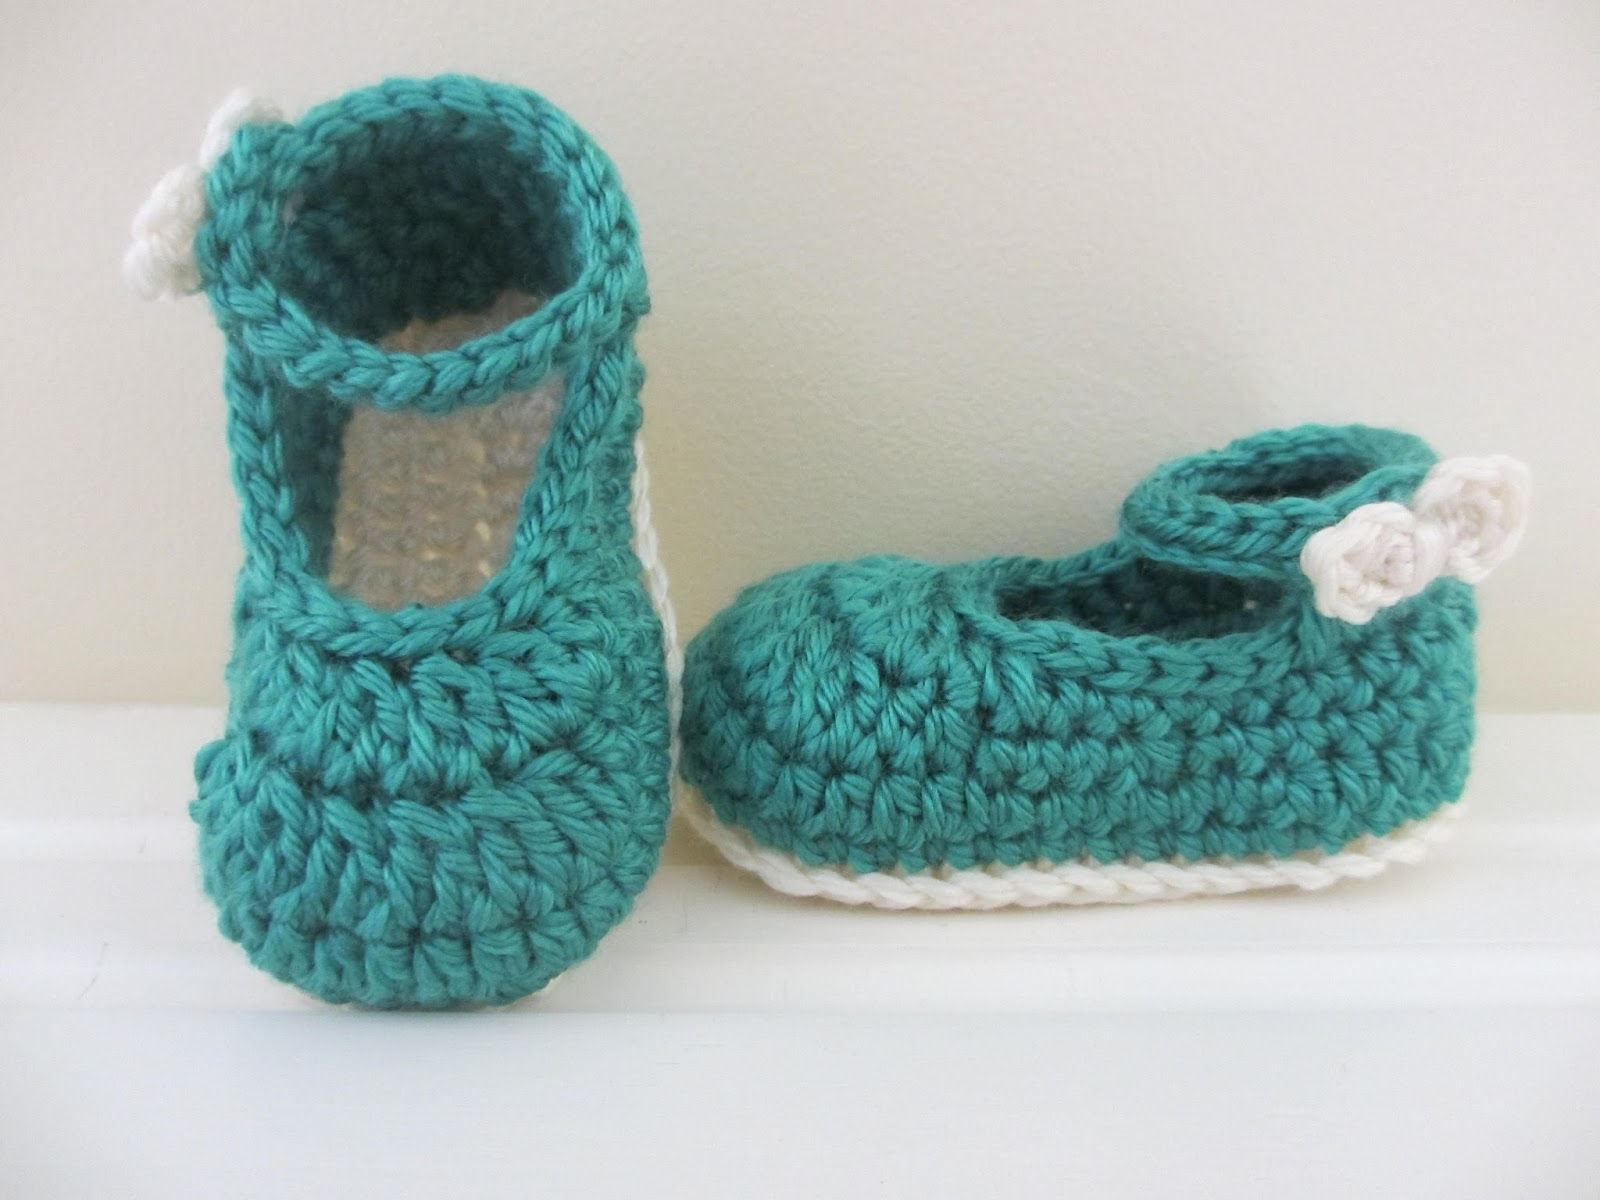 40+ Adorable and FREE Crochet Baby Booties Patterns --> Bow Buckle Mary Janes